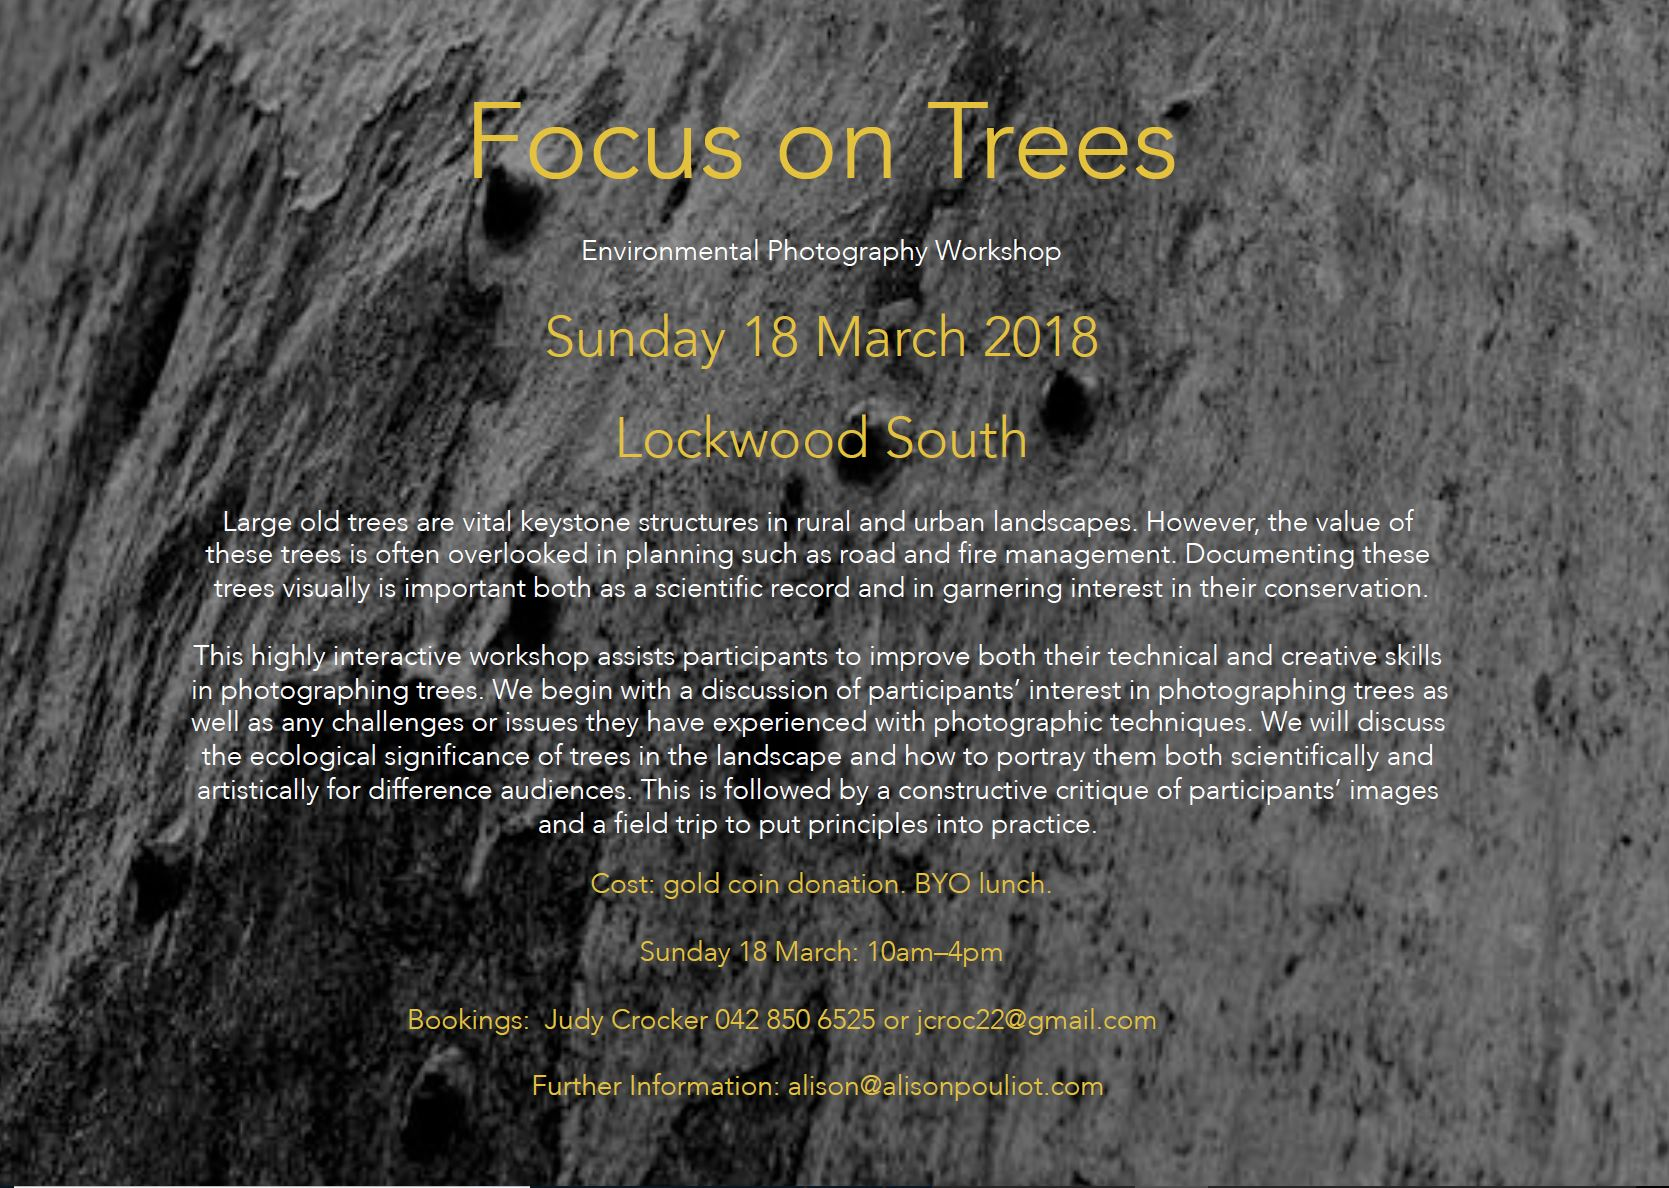 Focus on trees